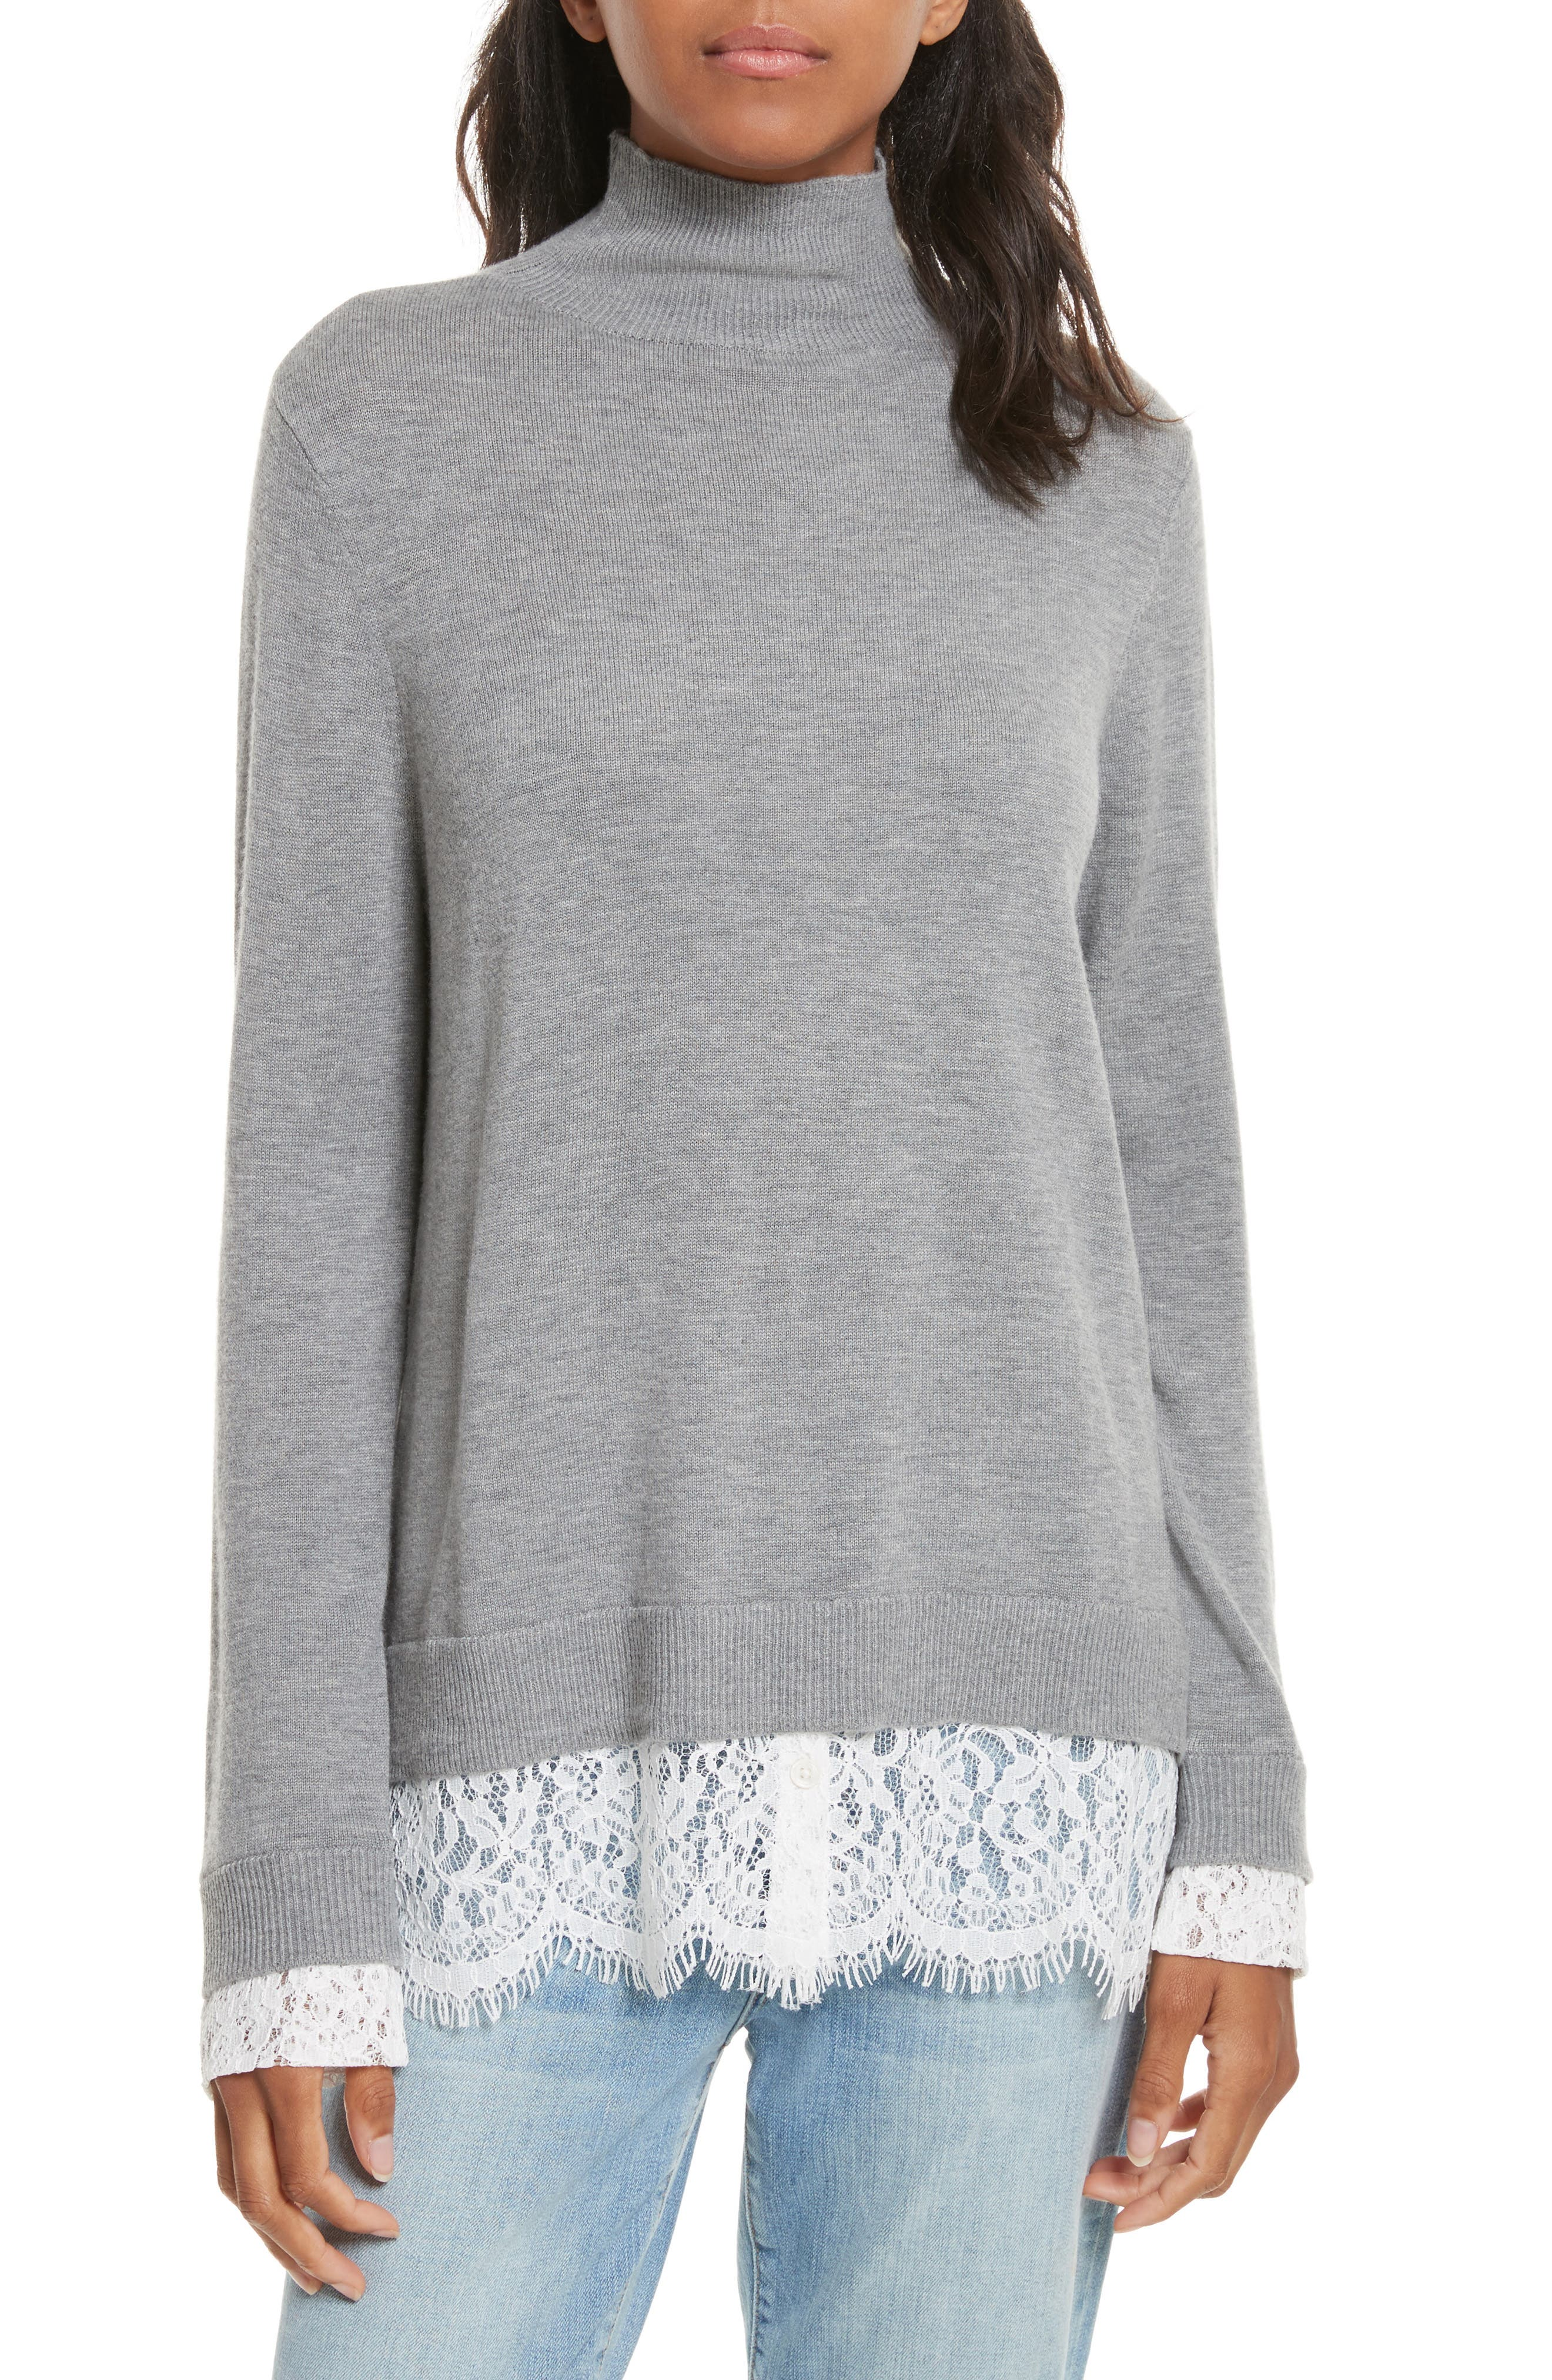 Alternate Image 1 Selected - Joie Fredrika Lace Inset Sweater